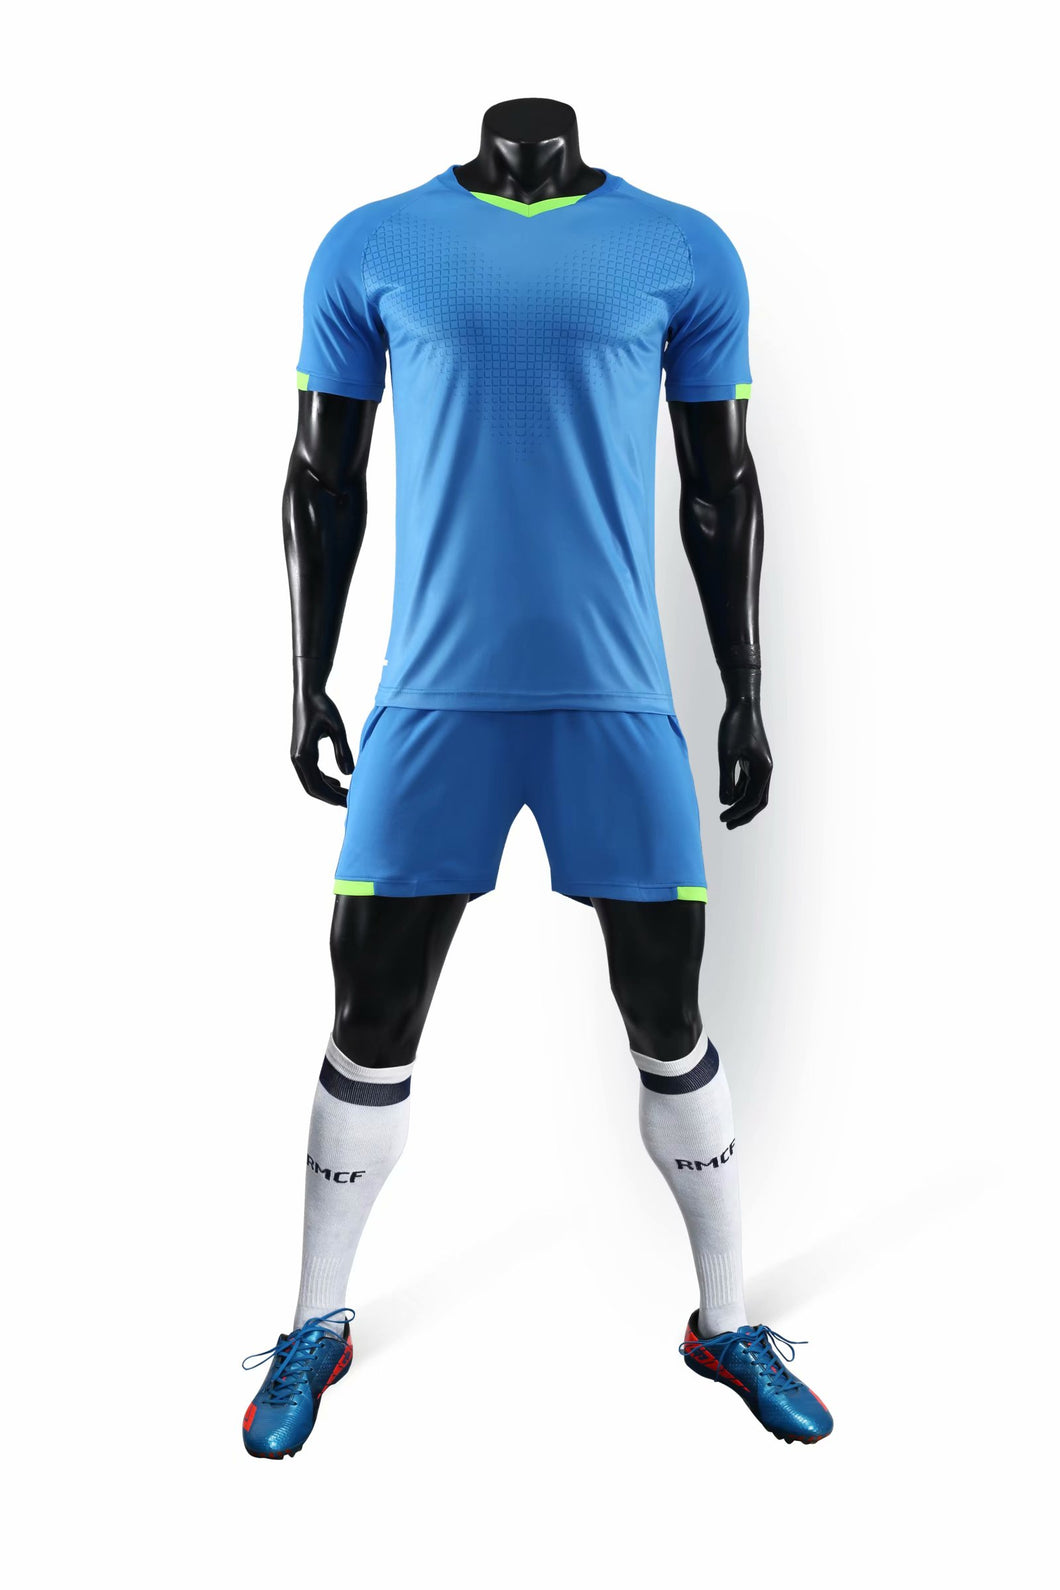 Full Football Kit - Plain Blue.